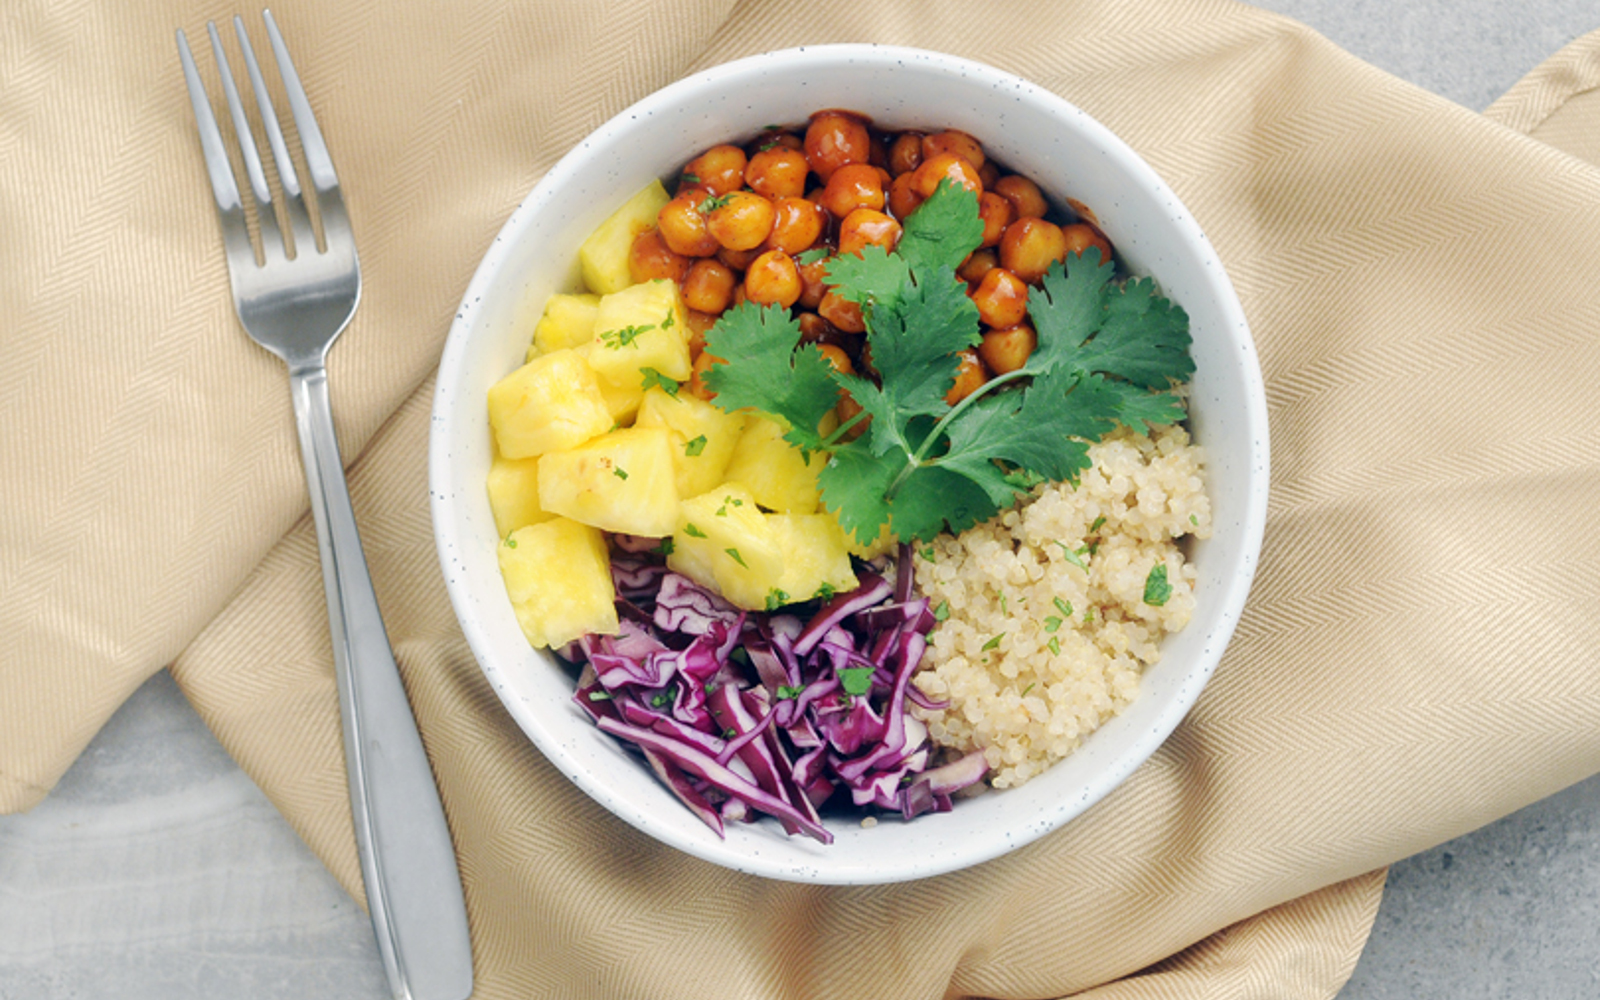 Vegan Gluten-Free Barbecue Chickpea Hawaiian Bowls